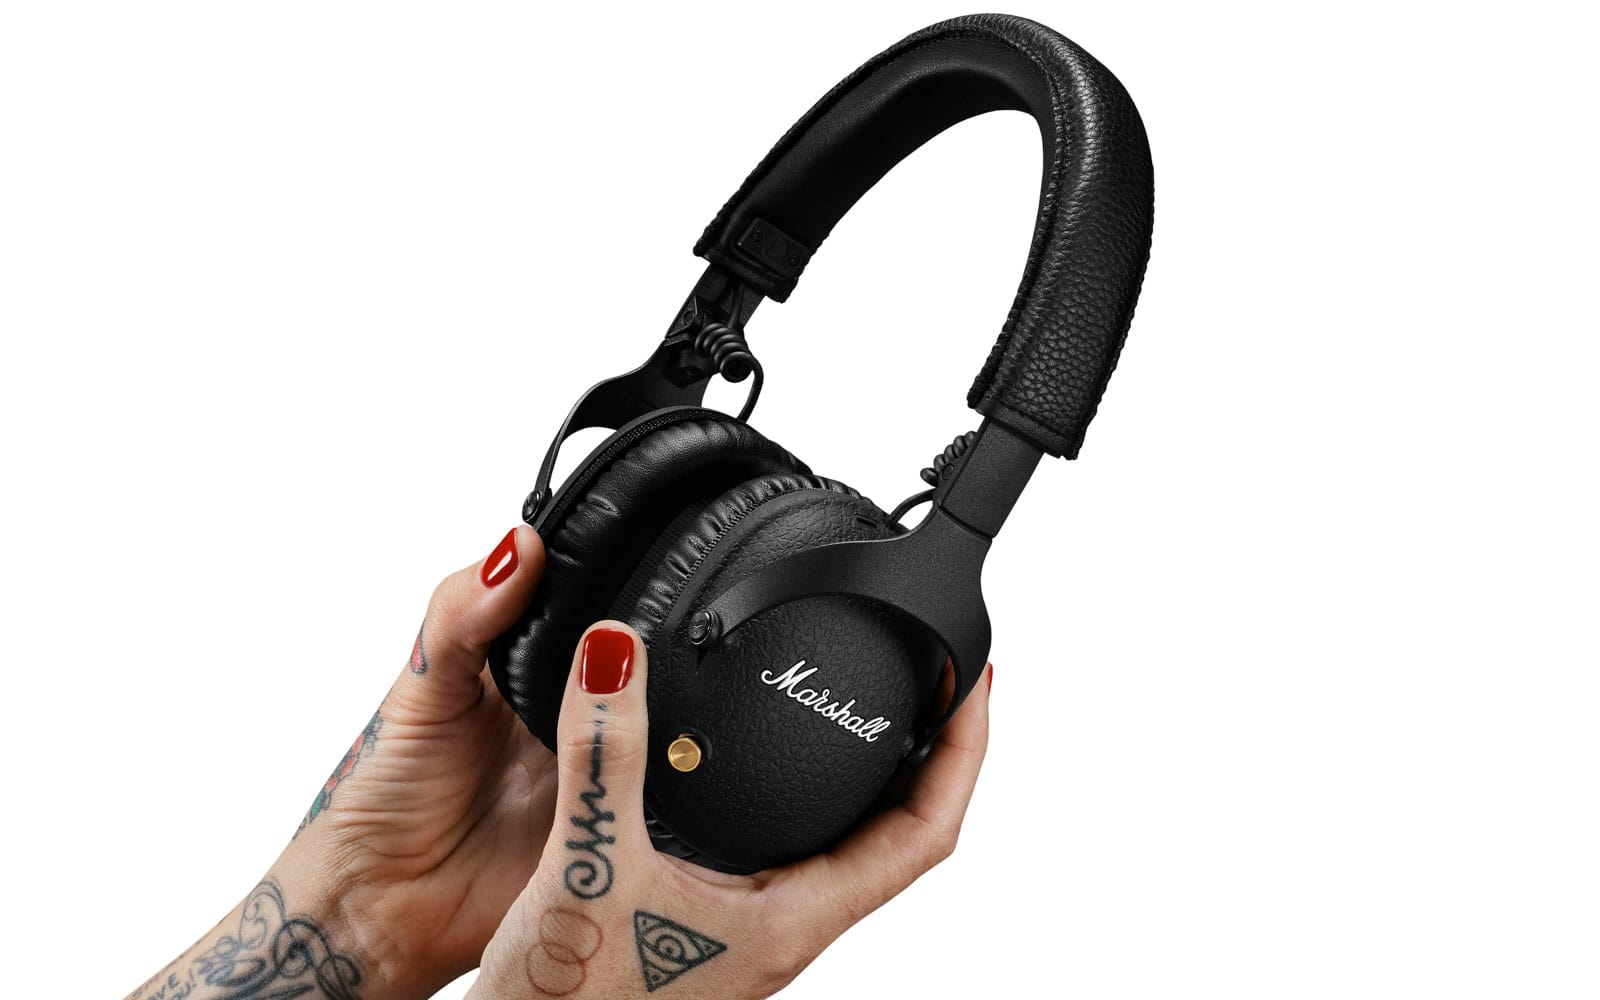 Marshall's latest Monitor over-ear headphones are equipped with ANC